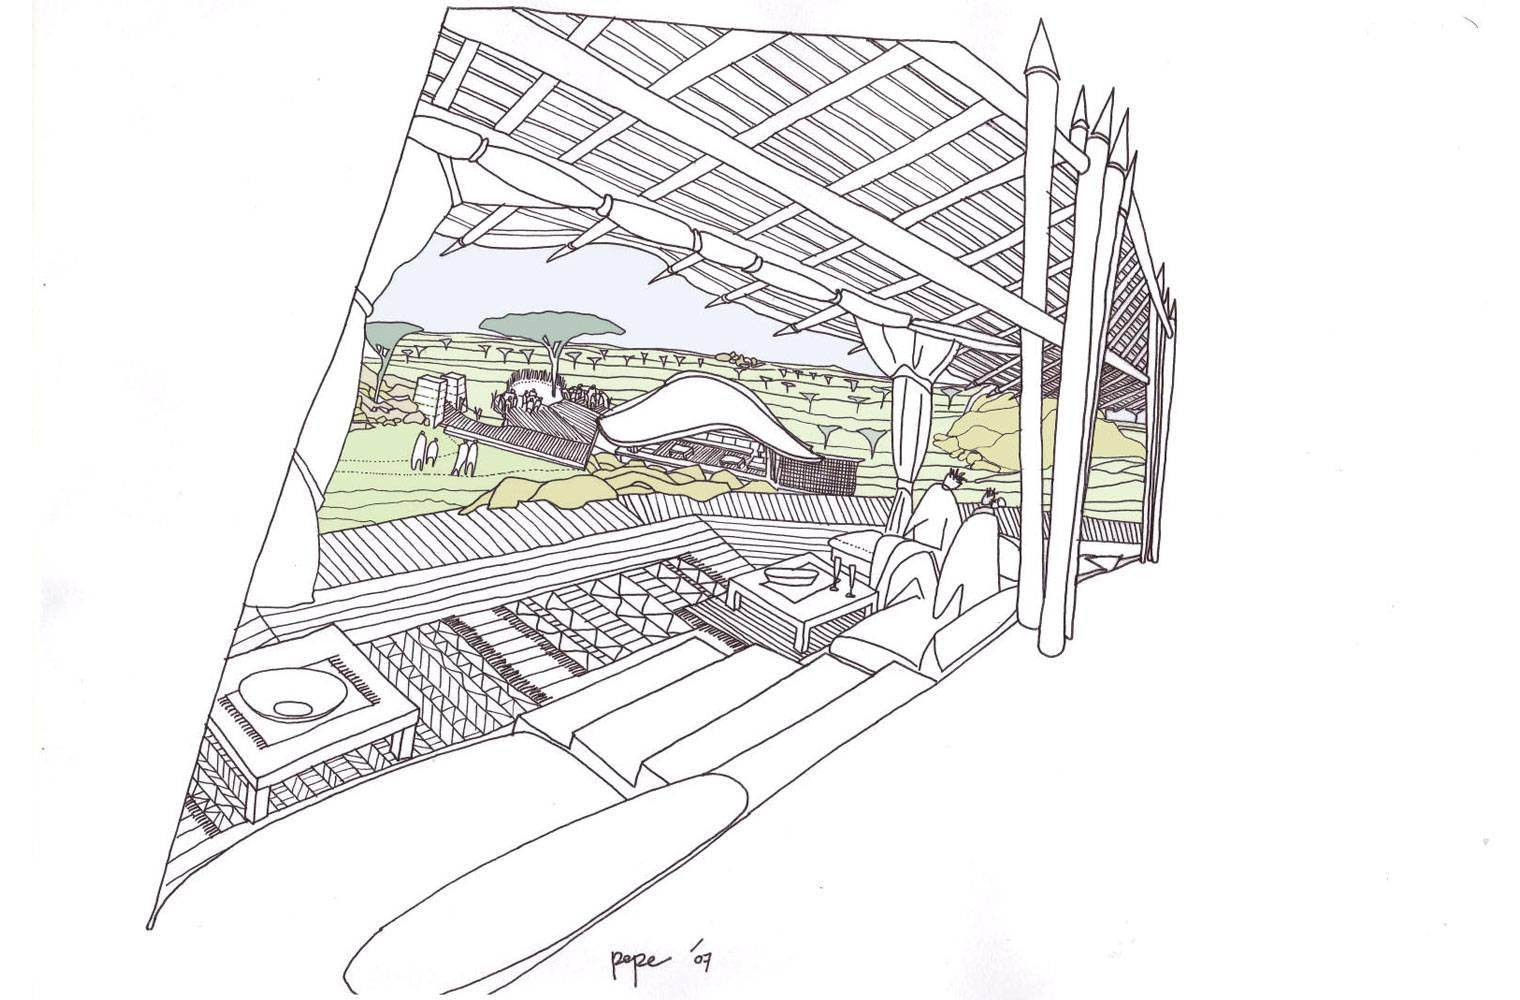 Serengeti Tented Camp - Concept Sketch